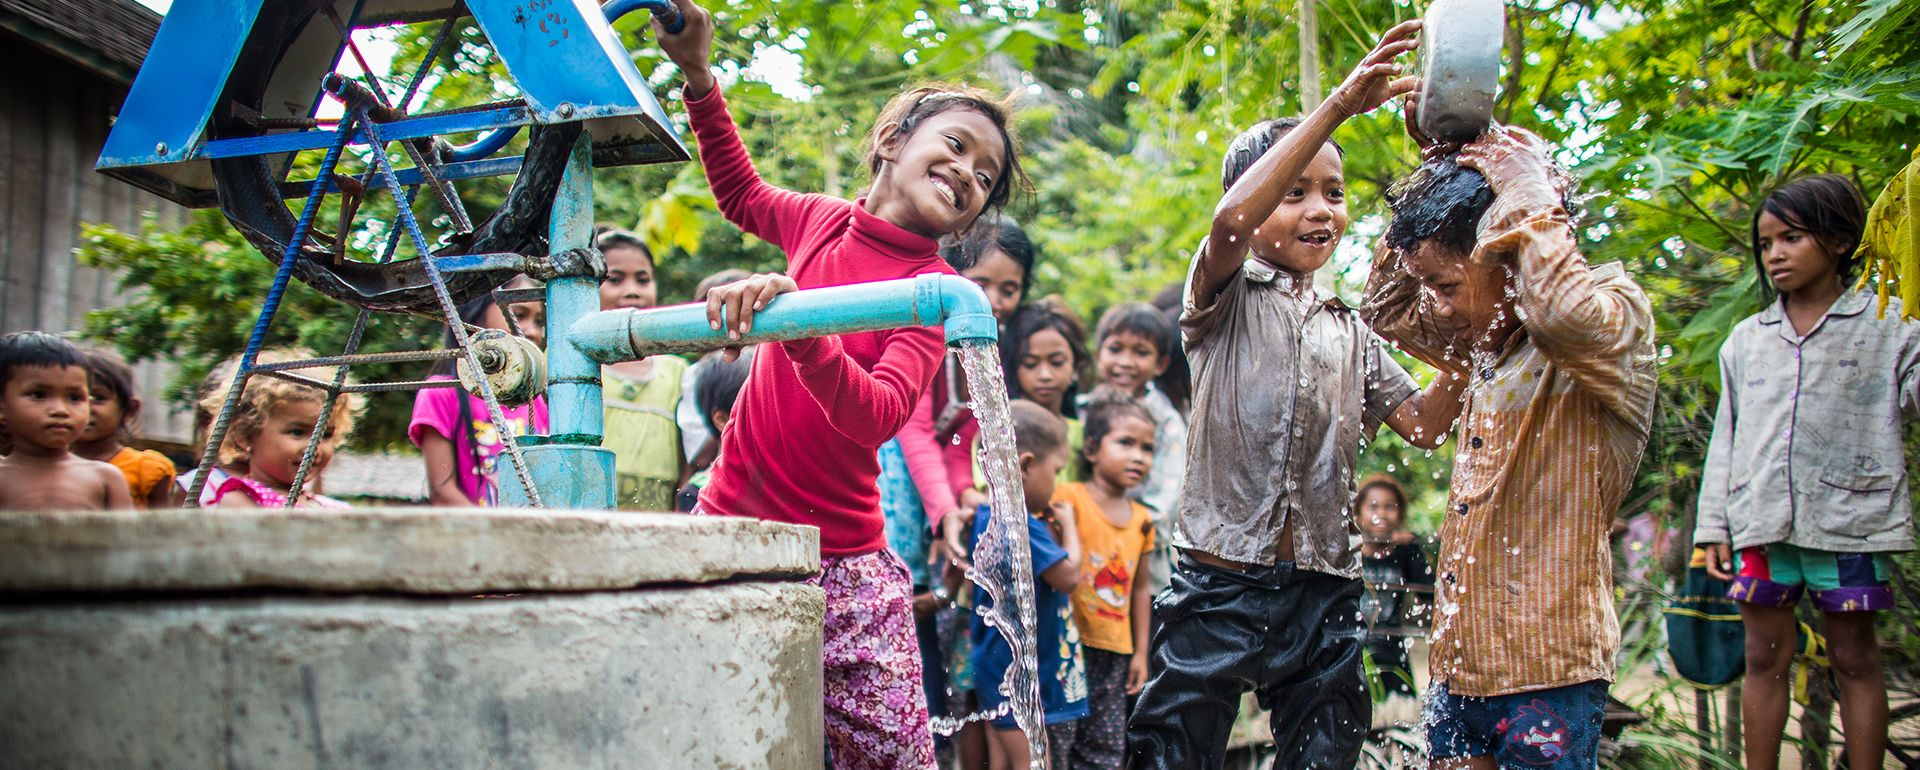 Clean water is an important component of helping to build a healthy community. By providing access to clean water through wells and boreholes is an amazing gift to a community.